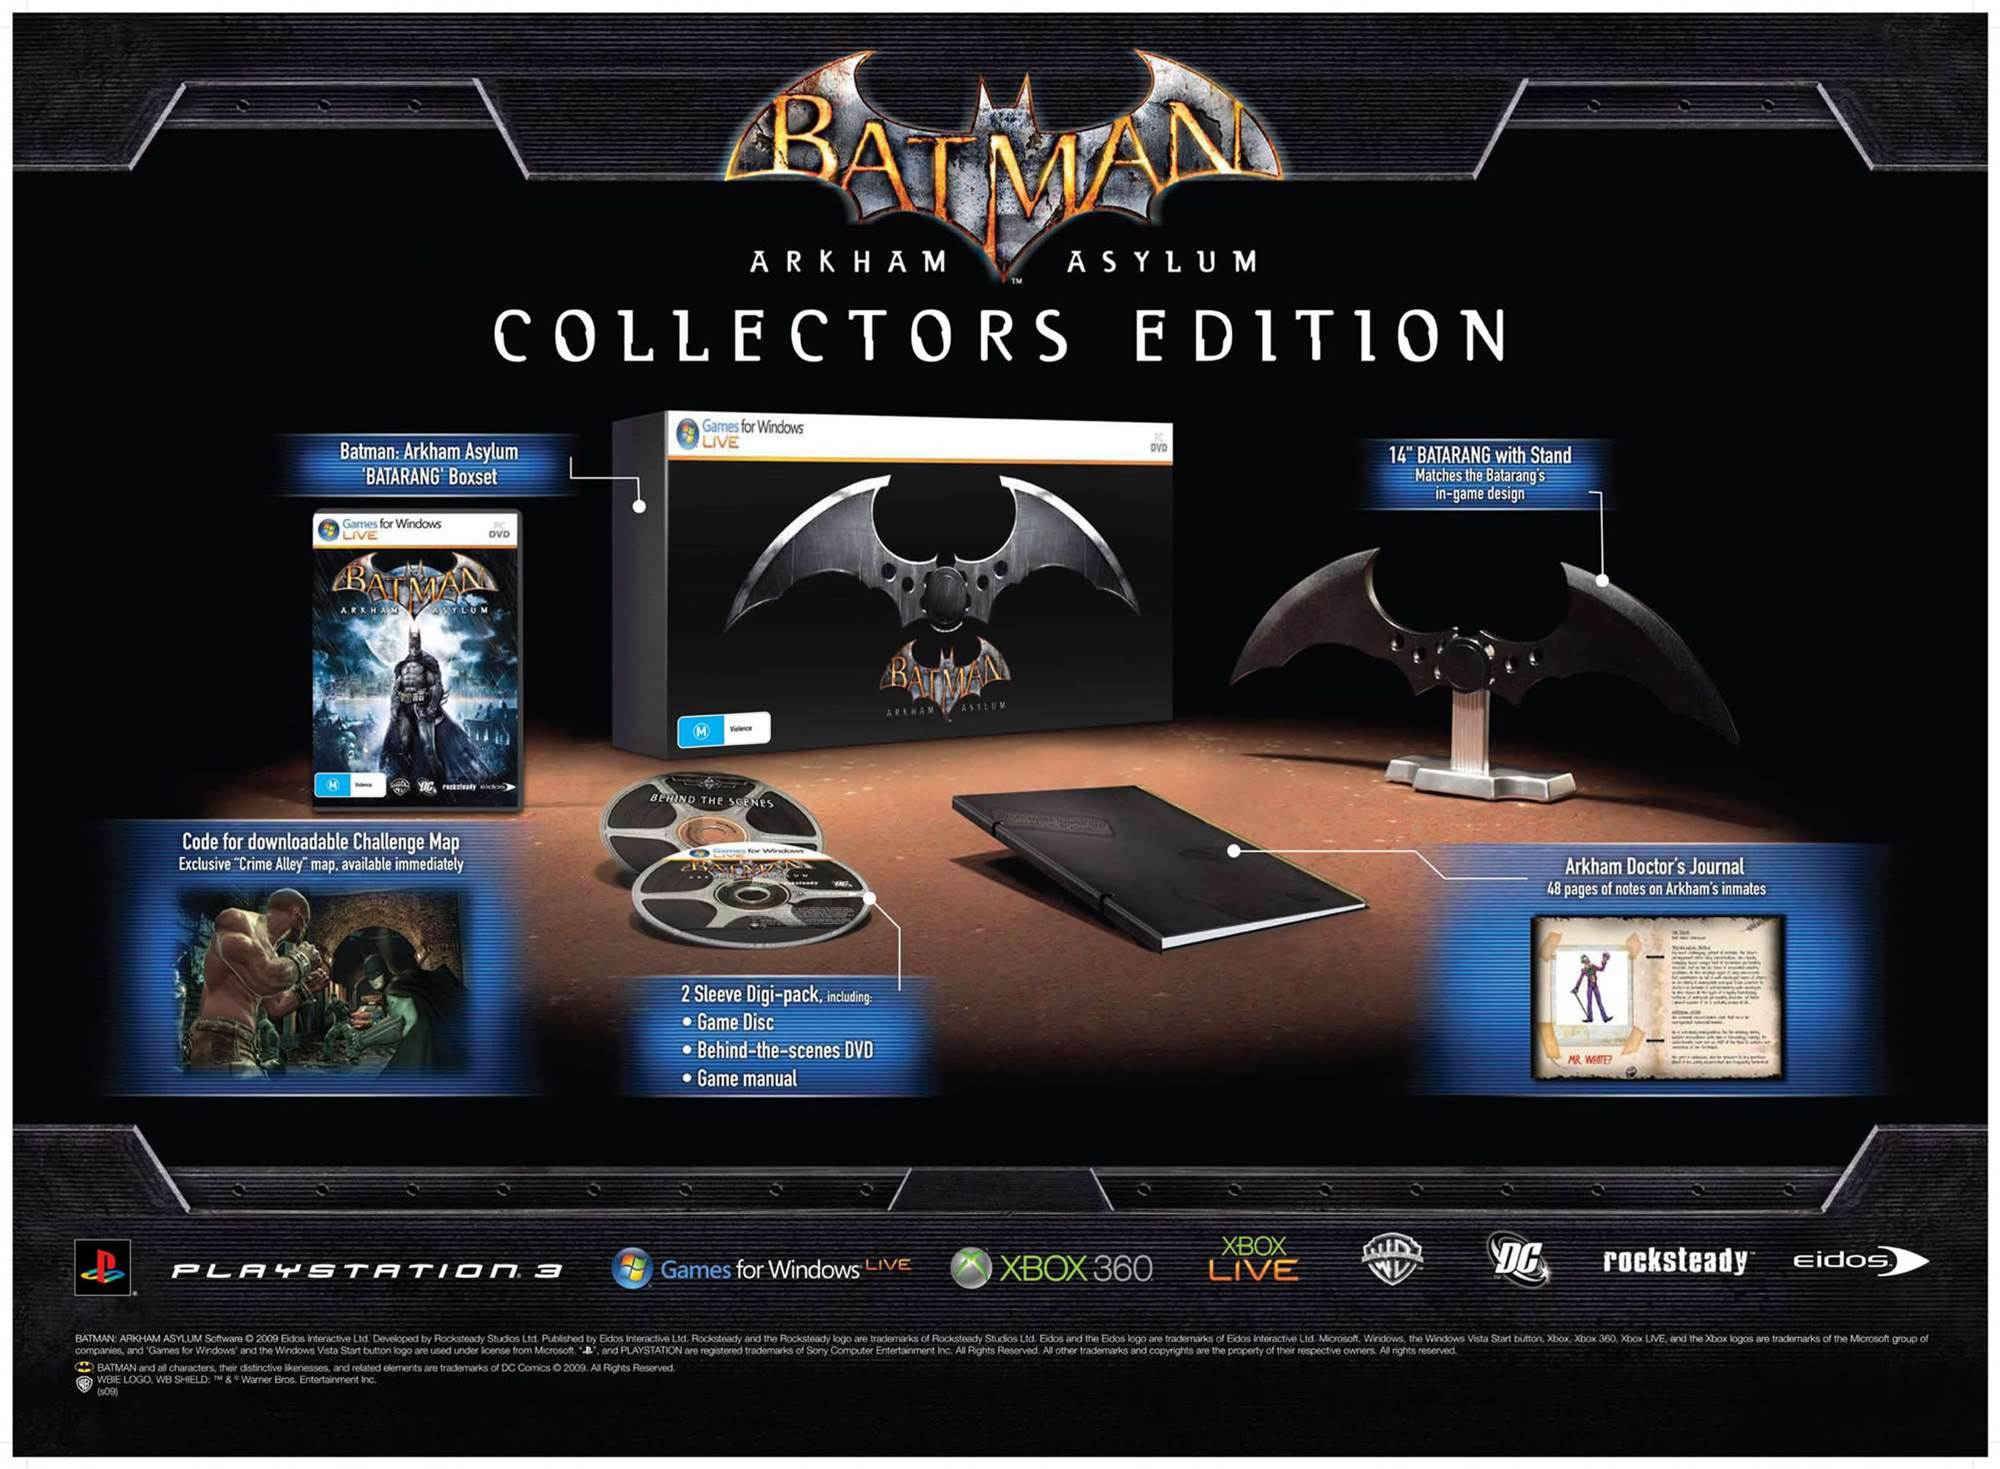 Arkham Asylum Collecter's Edition announced